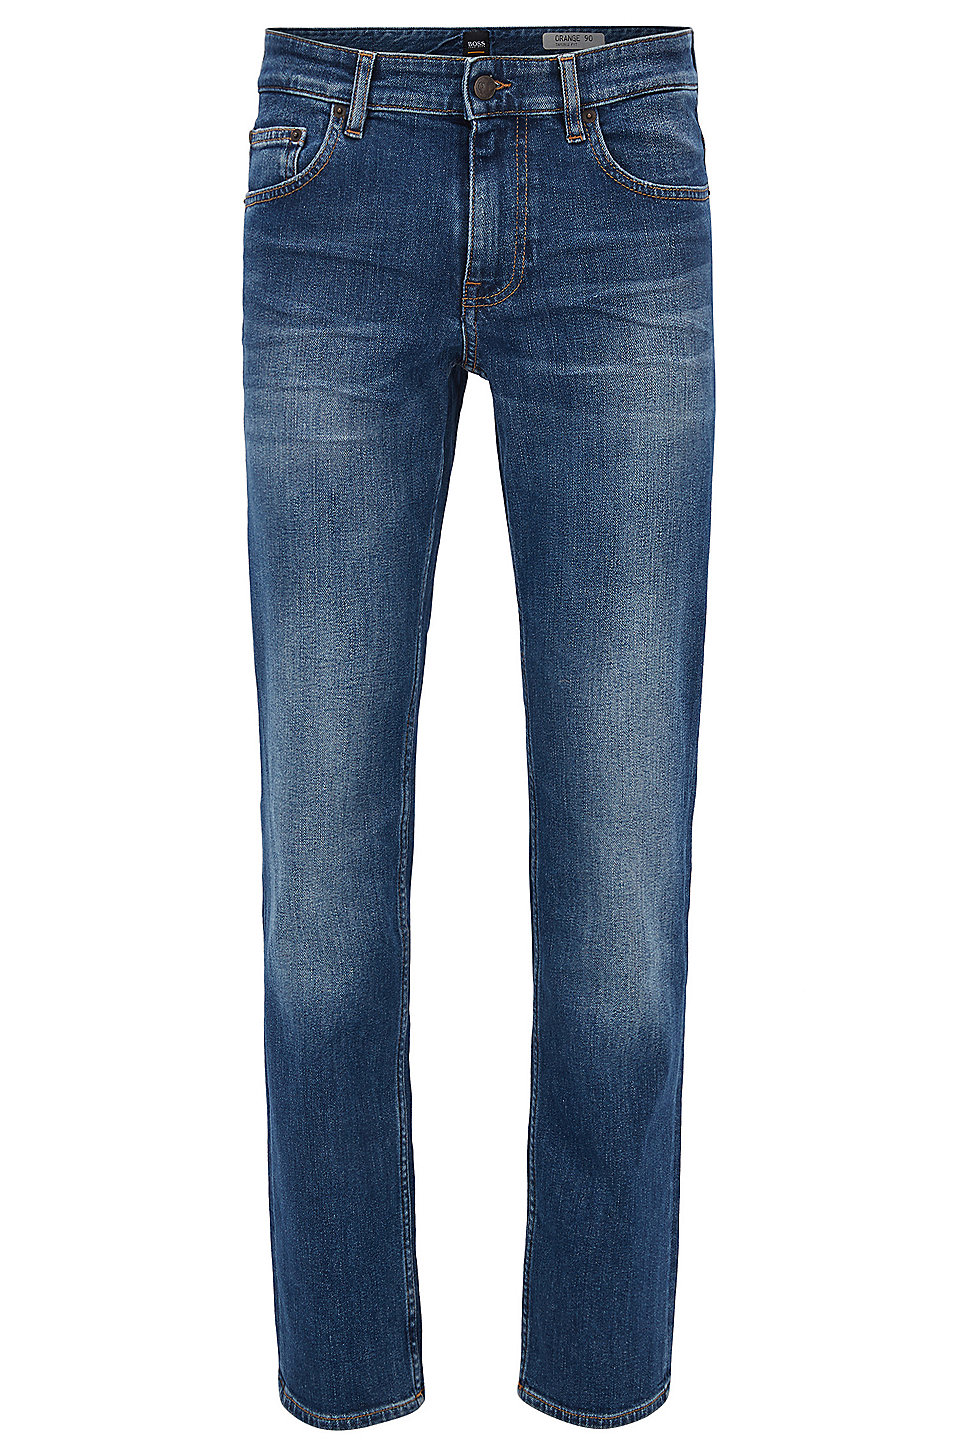 Free Shipping Cheap Real Mid-blue slim-fit jeans in stretch denim BOSS Recommend Discount Online Sale Discount How Much Outlet Clearance kKzpuo